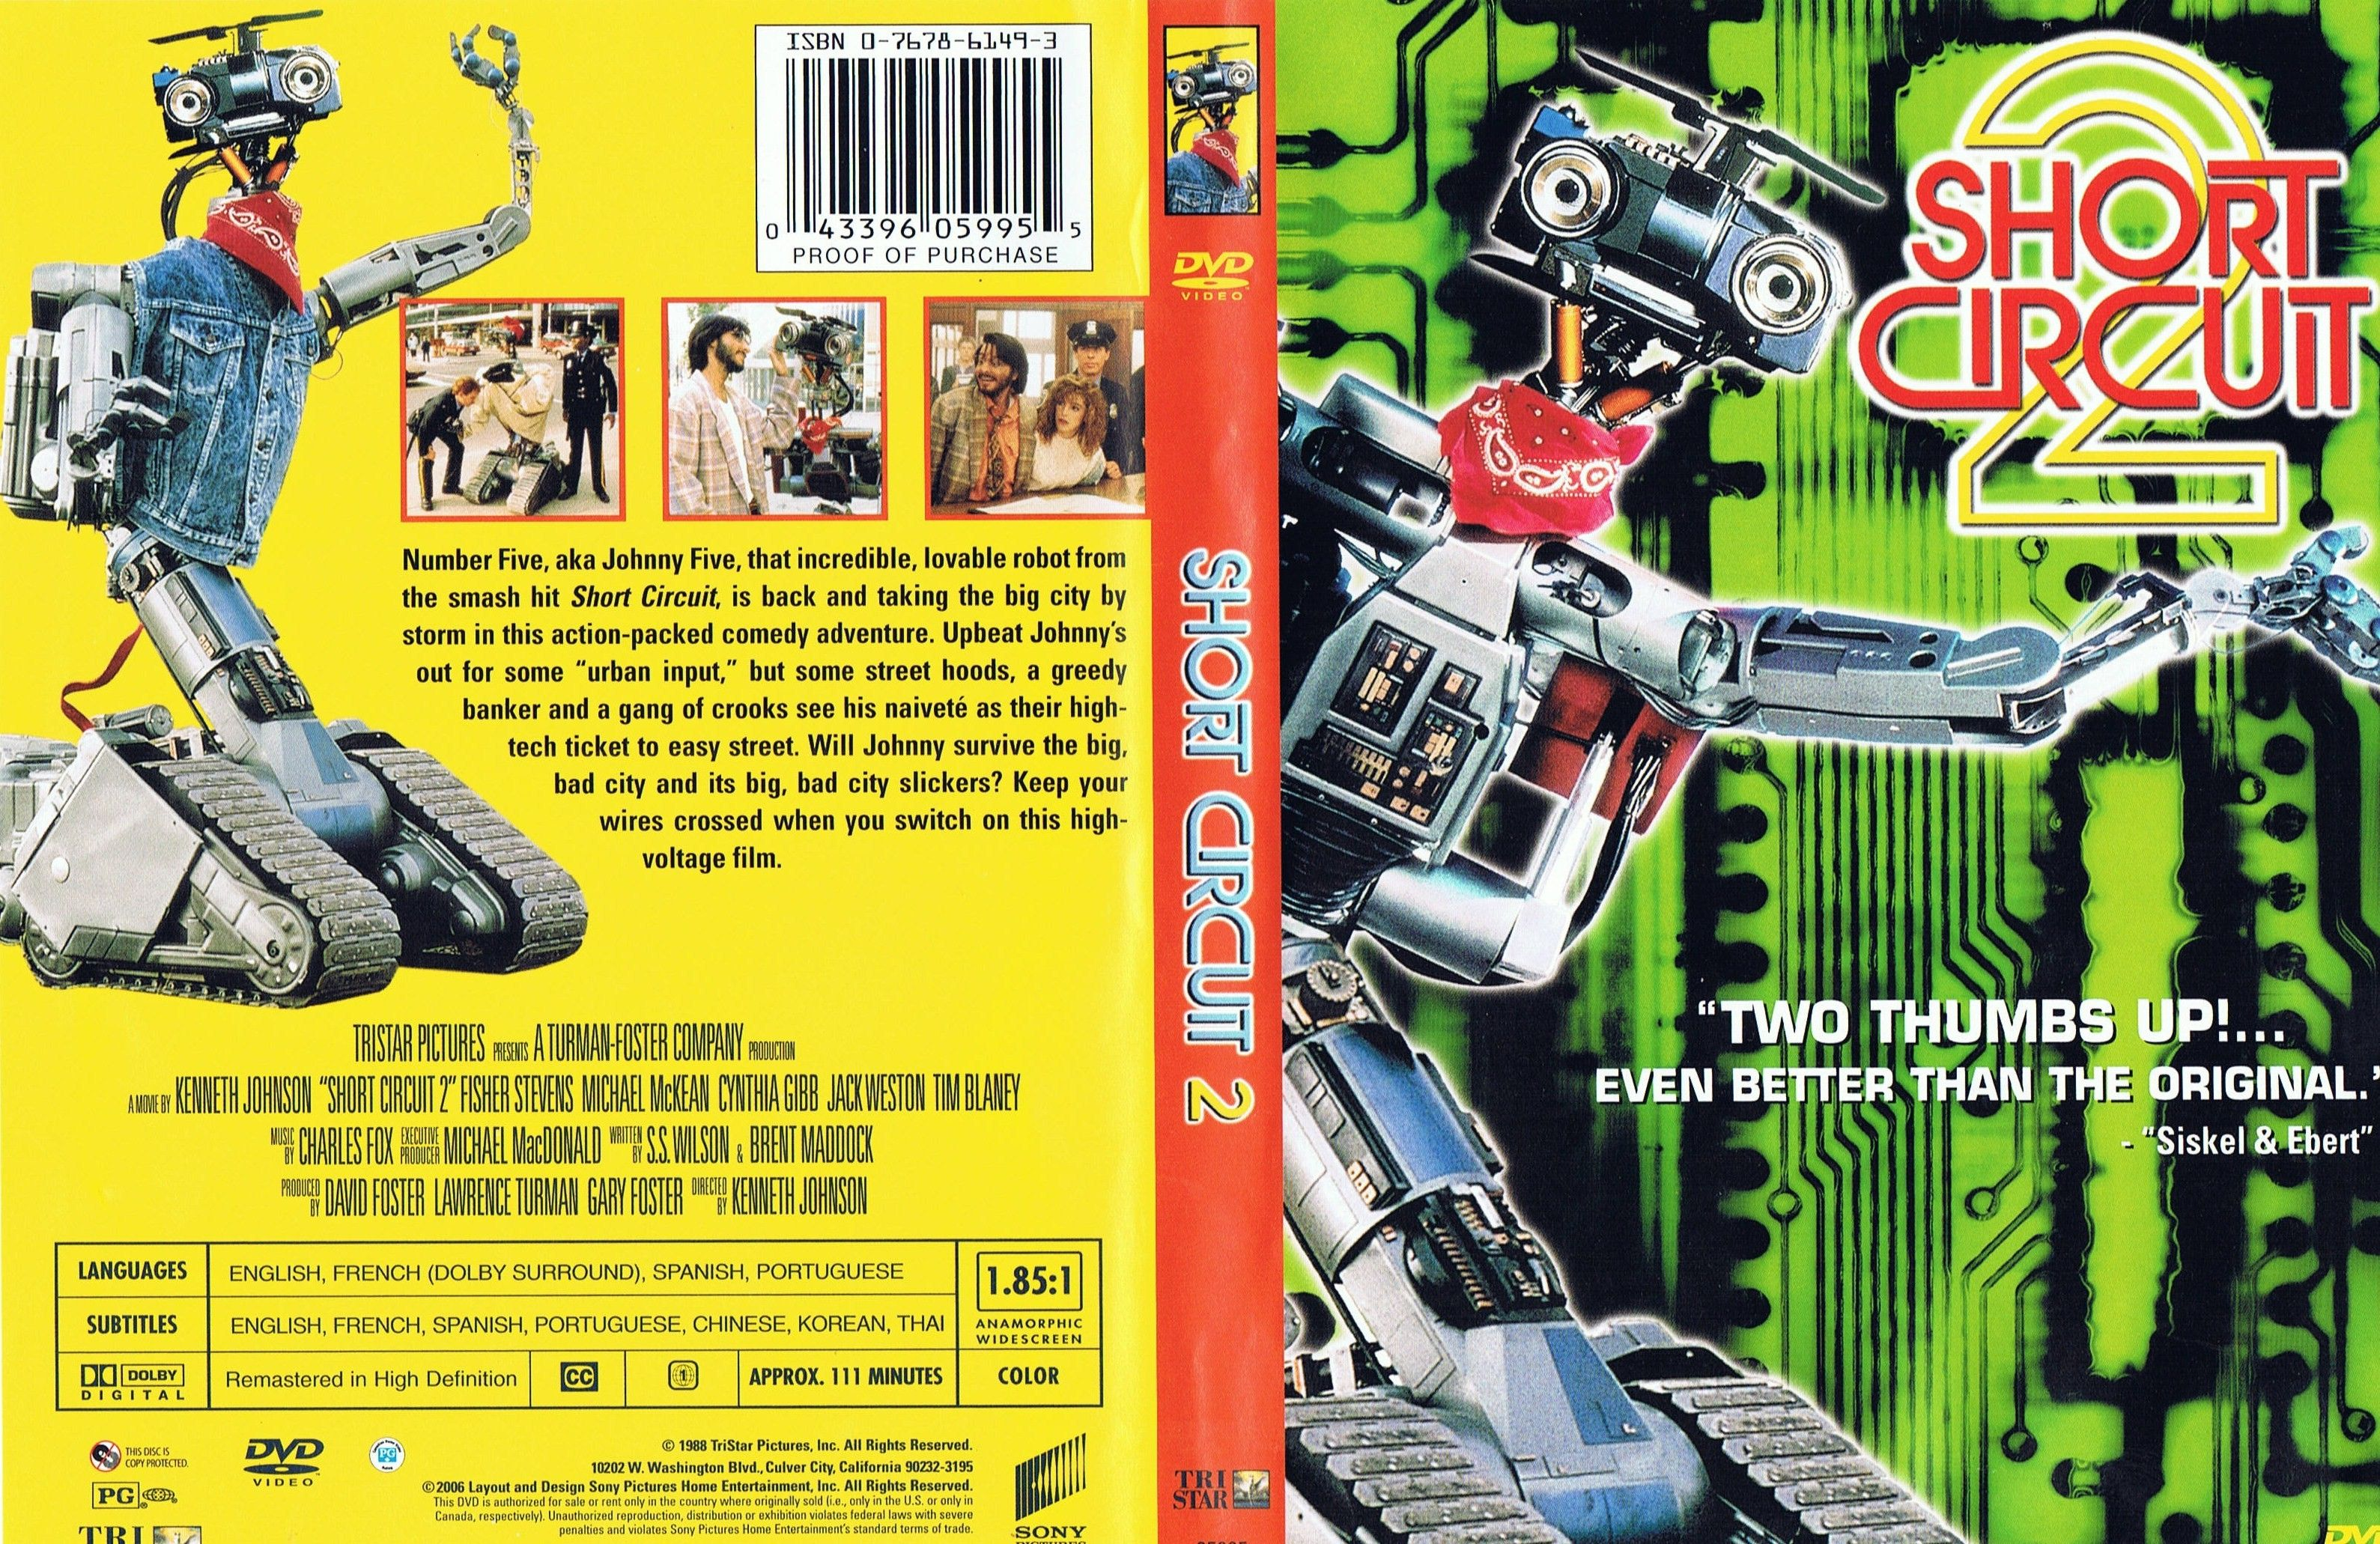 short circuit 2 dvd us dvd covers cover century over 500000